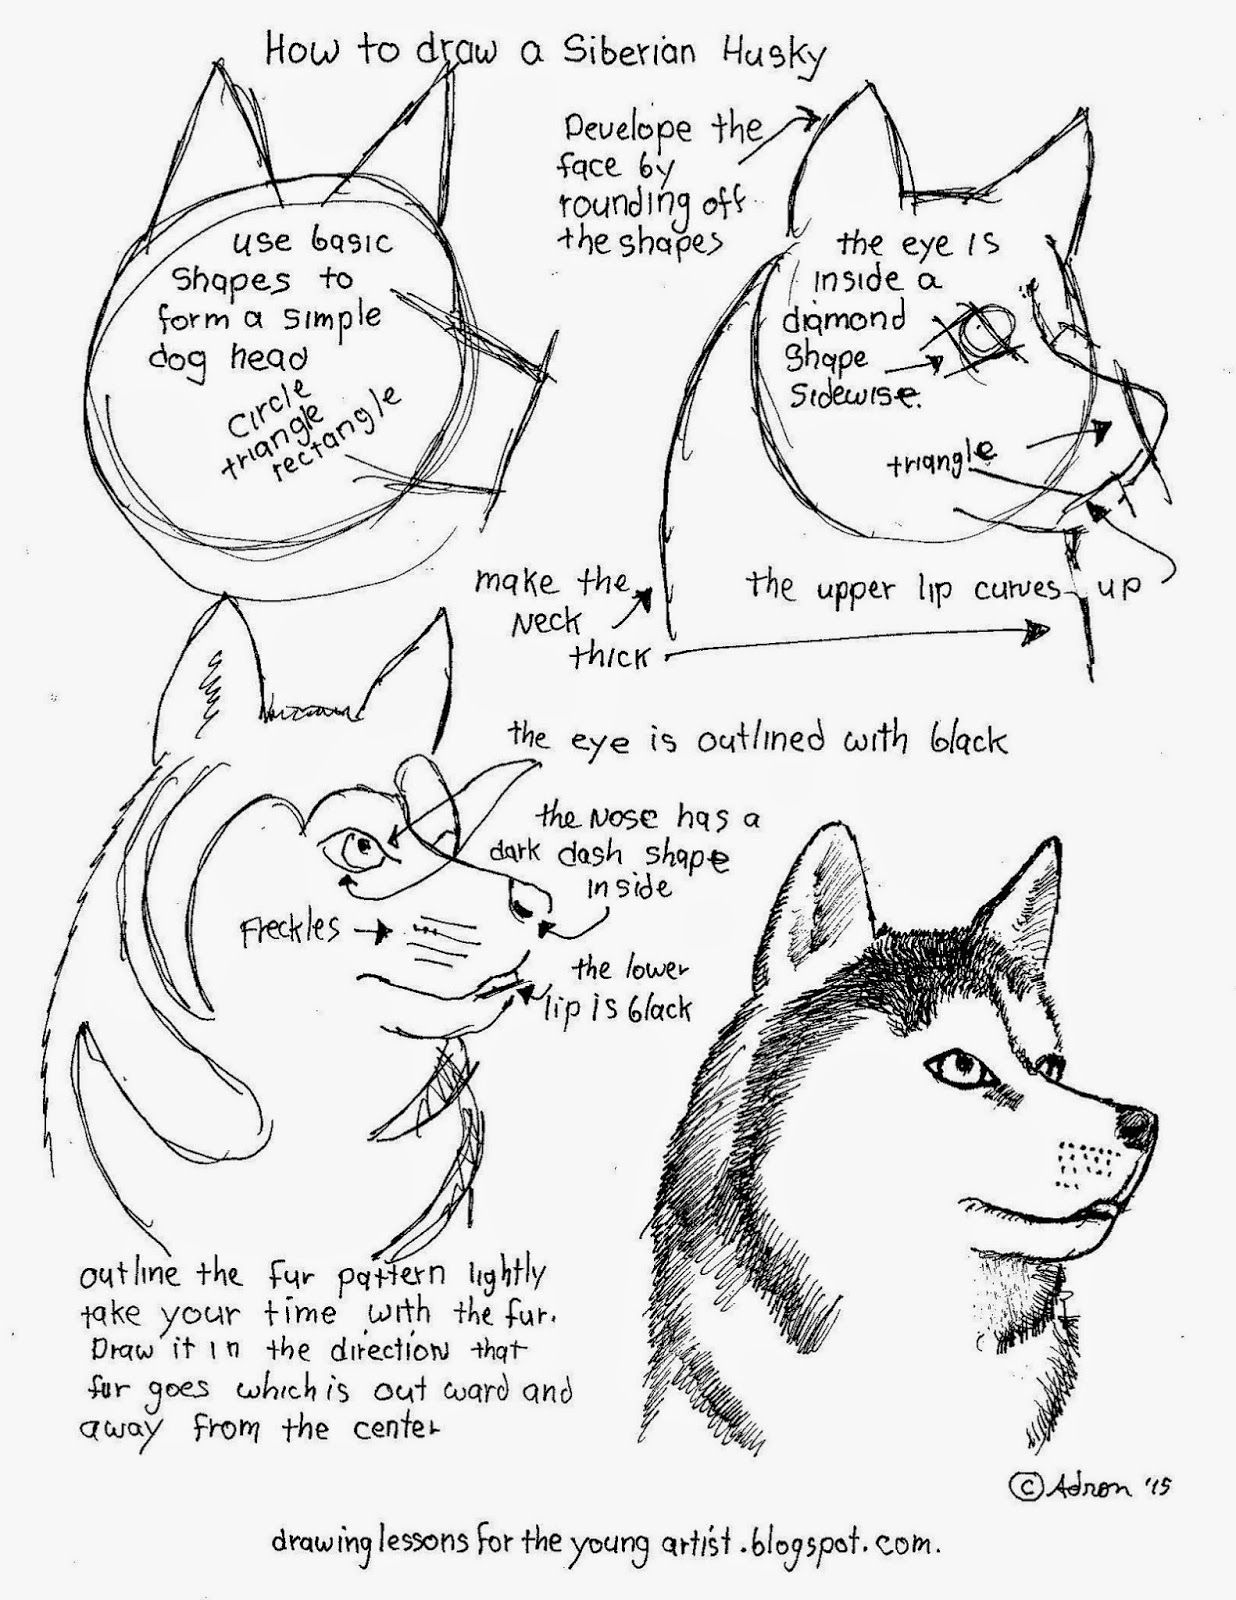 worksheet Drawing Worksheets how to draw a siberian husky free printable worksheet worksheets for young artist